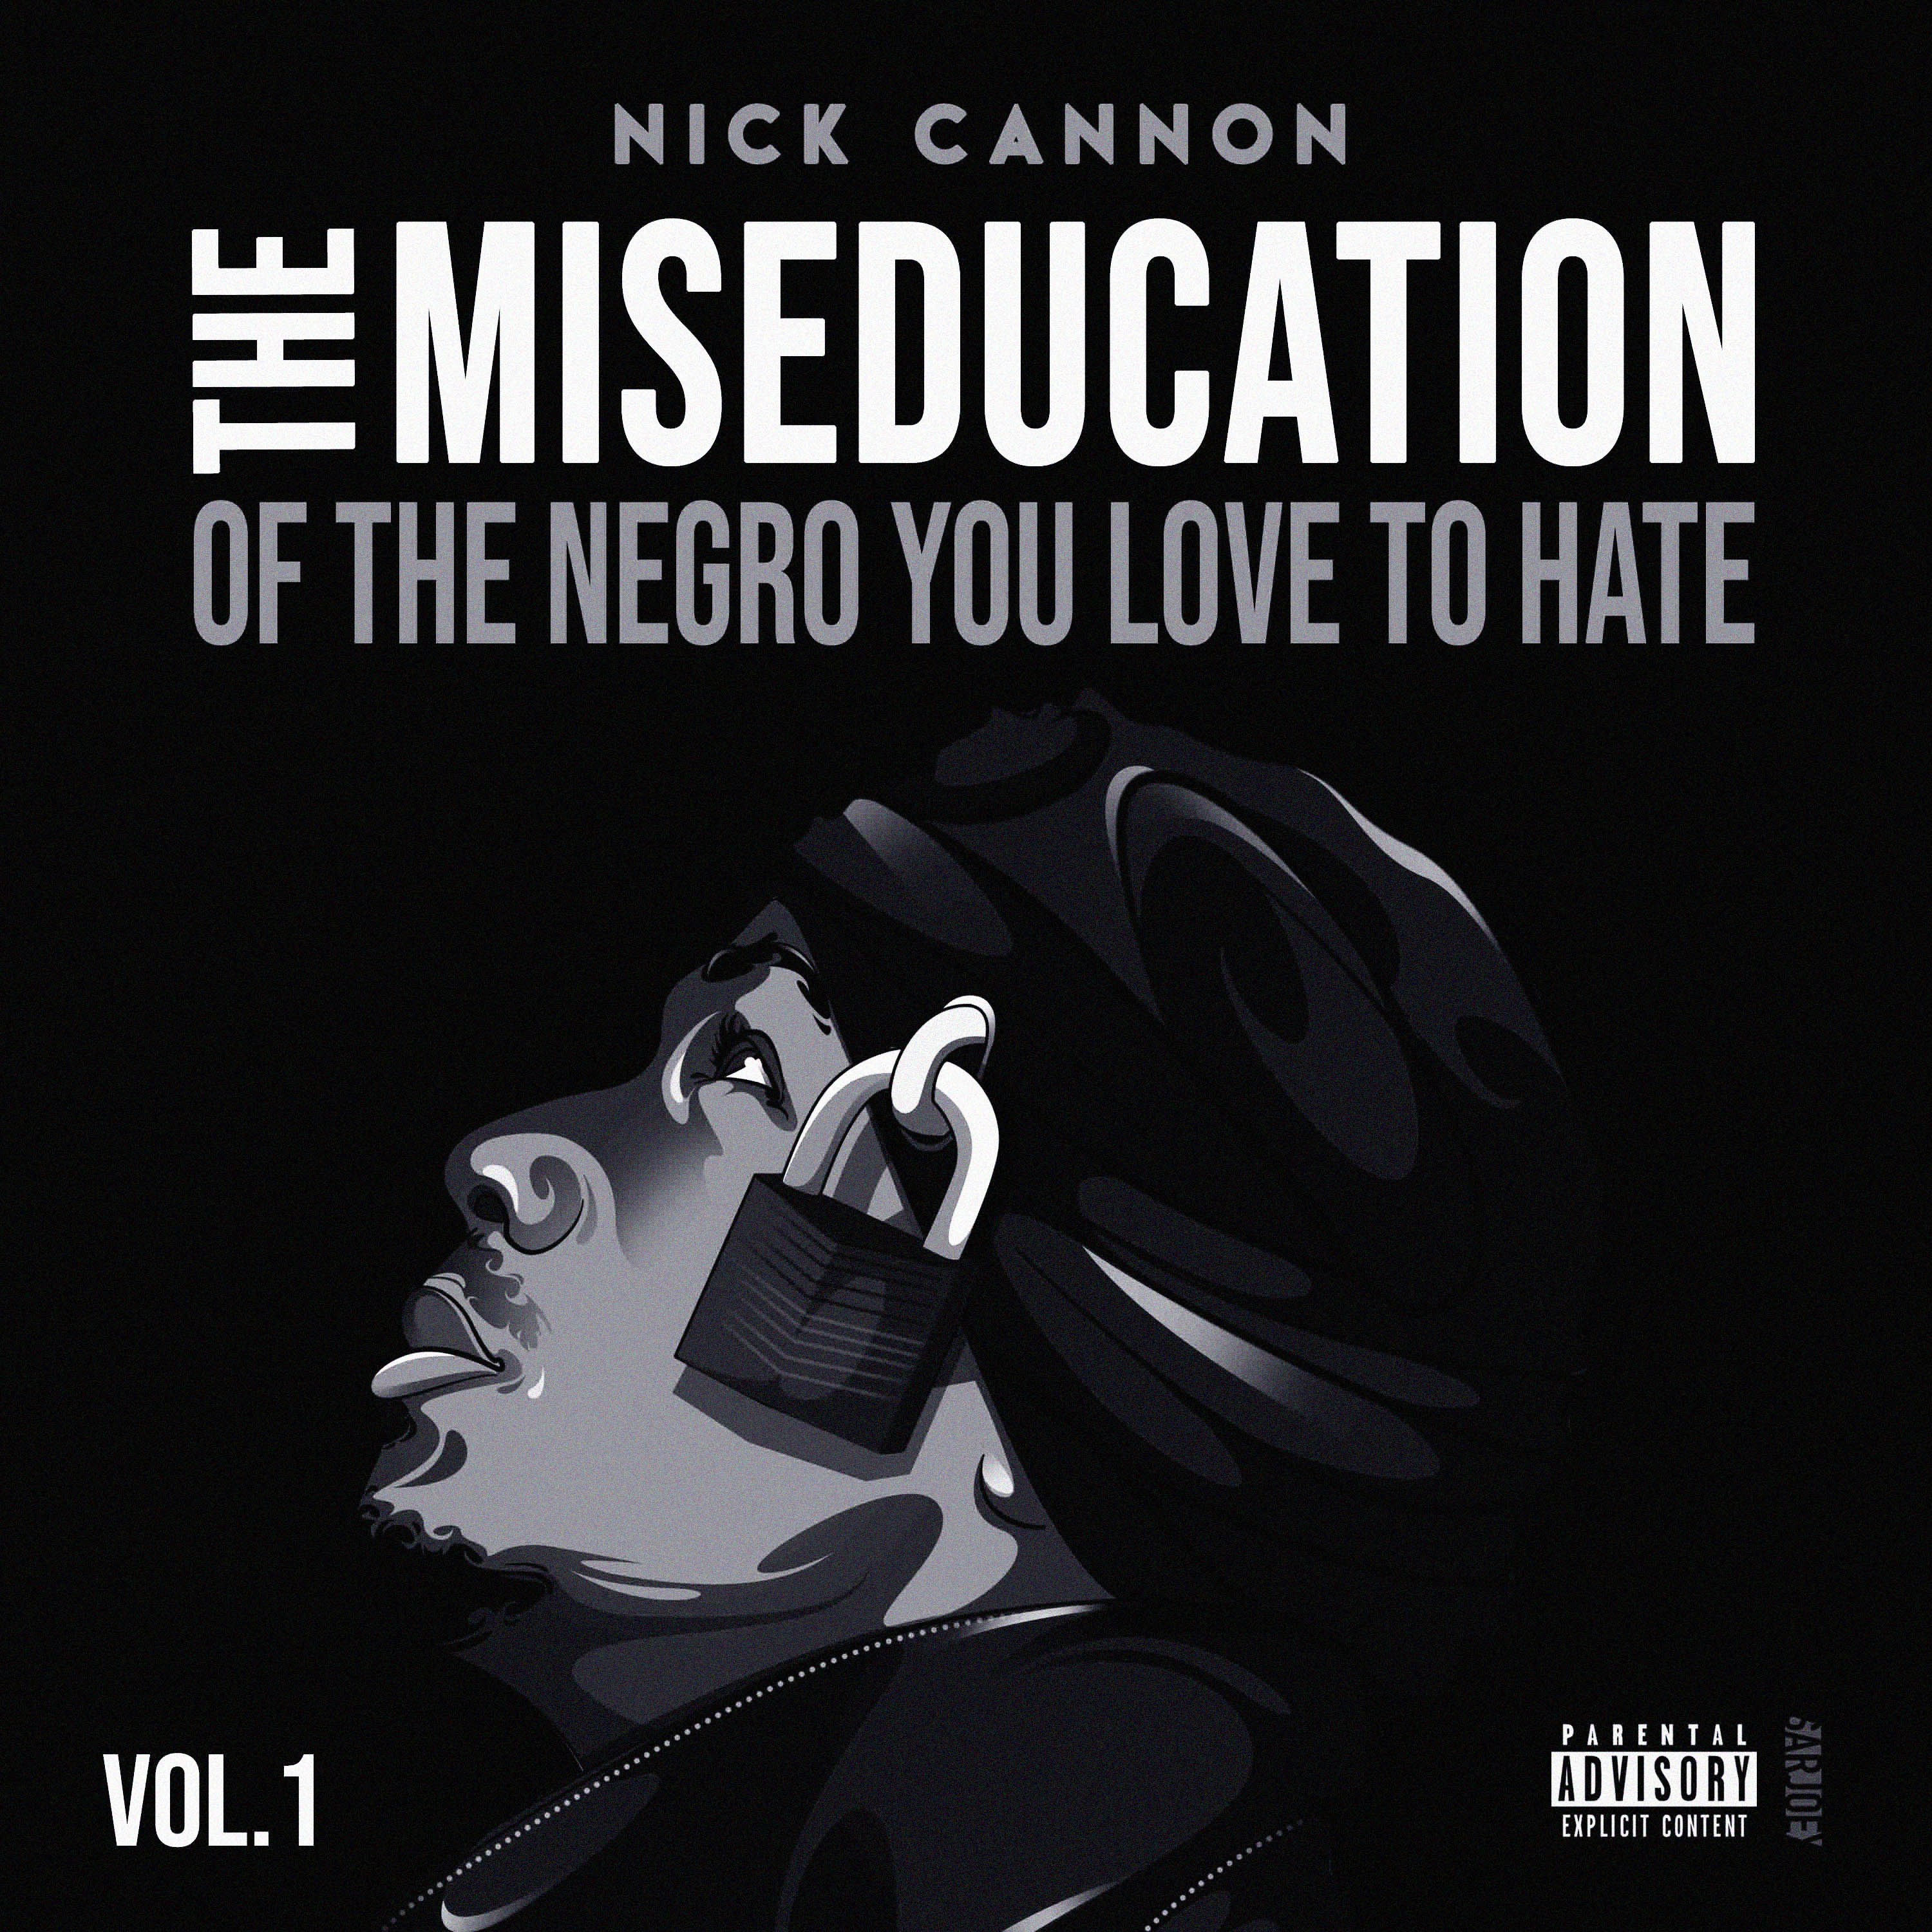 """THE MISEDUCATION OF THE NEGRO YOU LOVE TO HATE"" IS OUT NOW!"